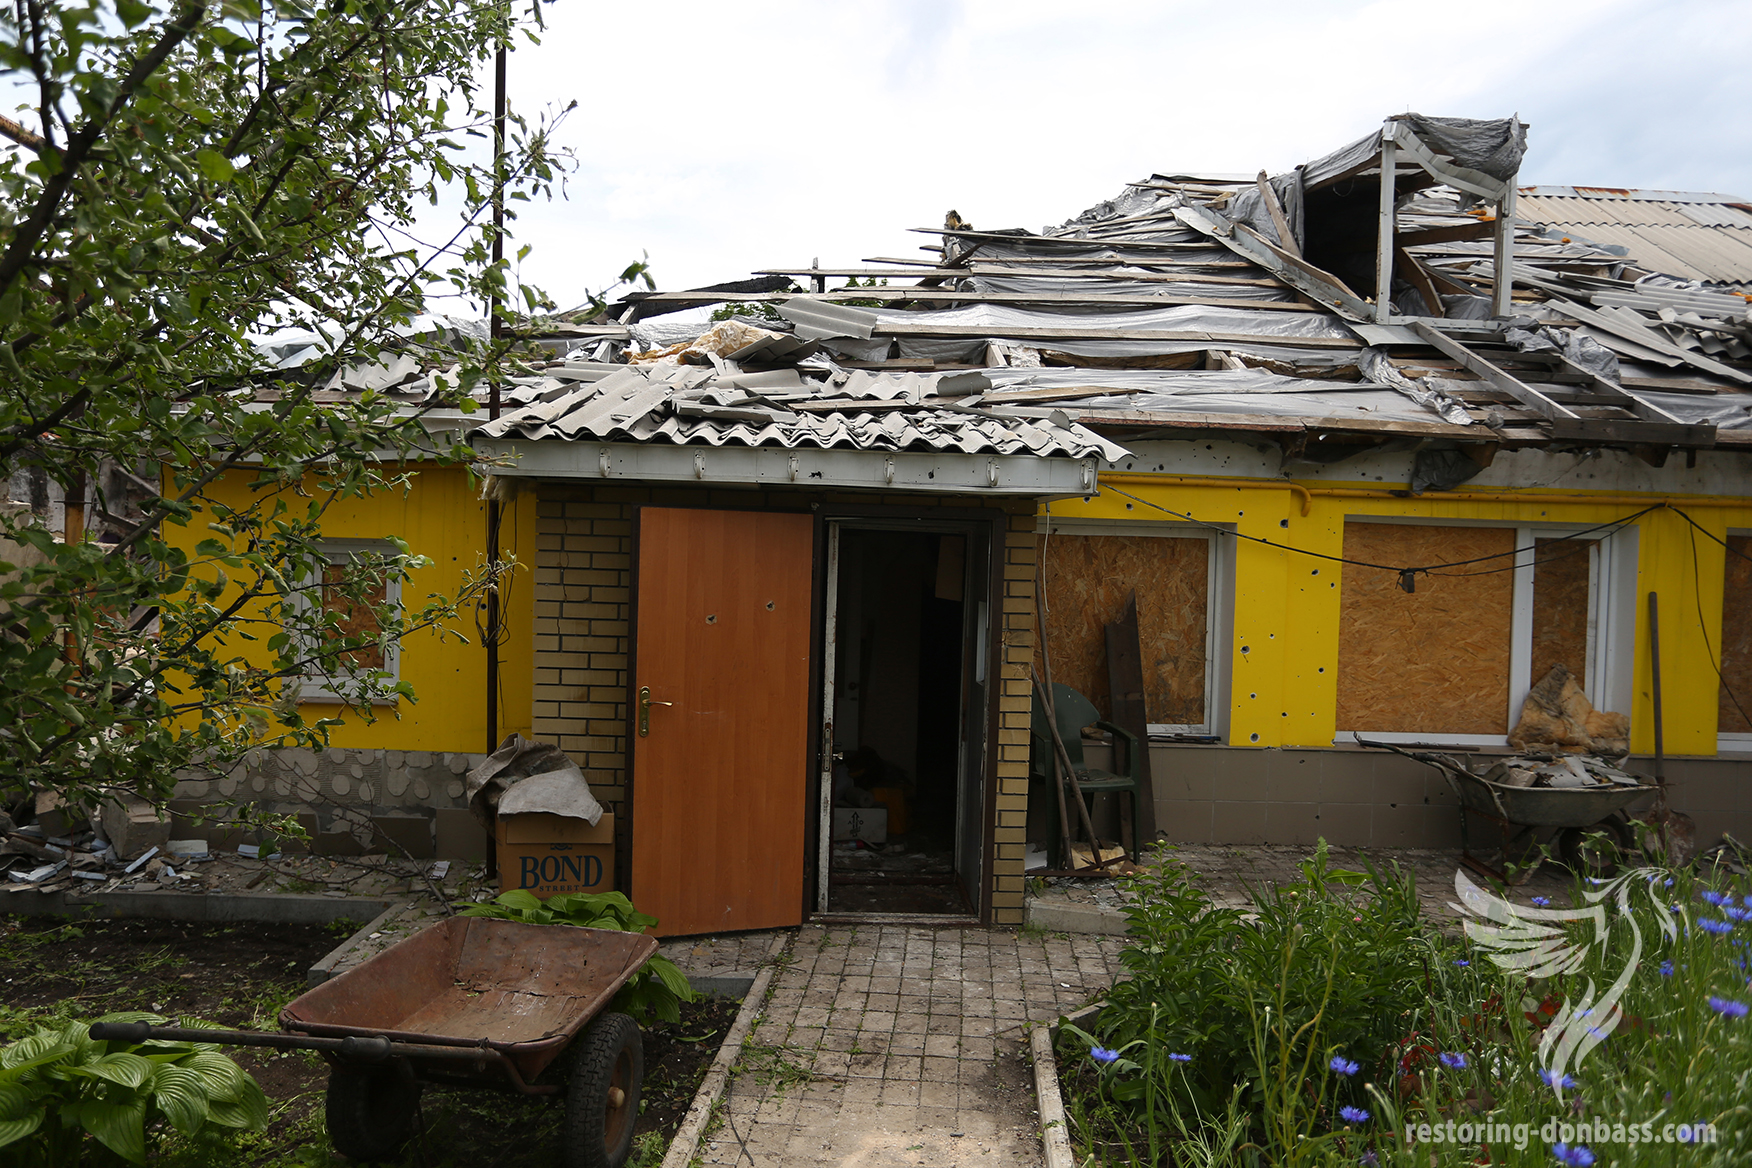 The house, which was destroyed by shells, Kievskiy district, Donetsk, June 1, 2015